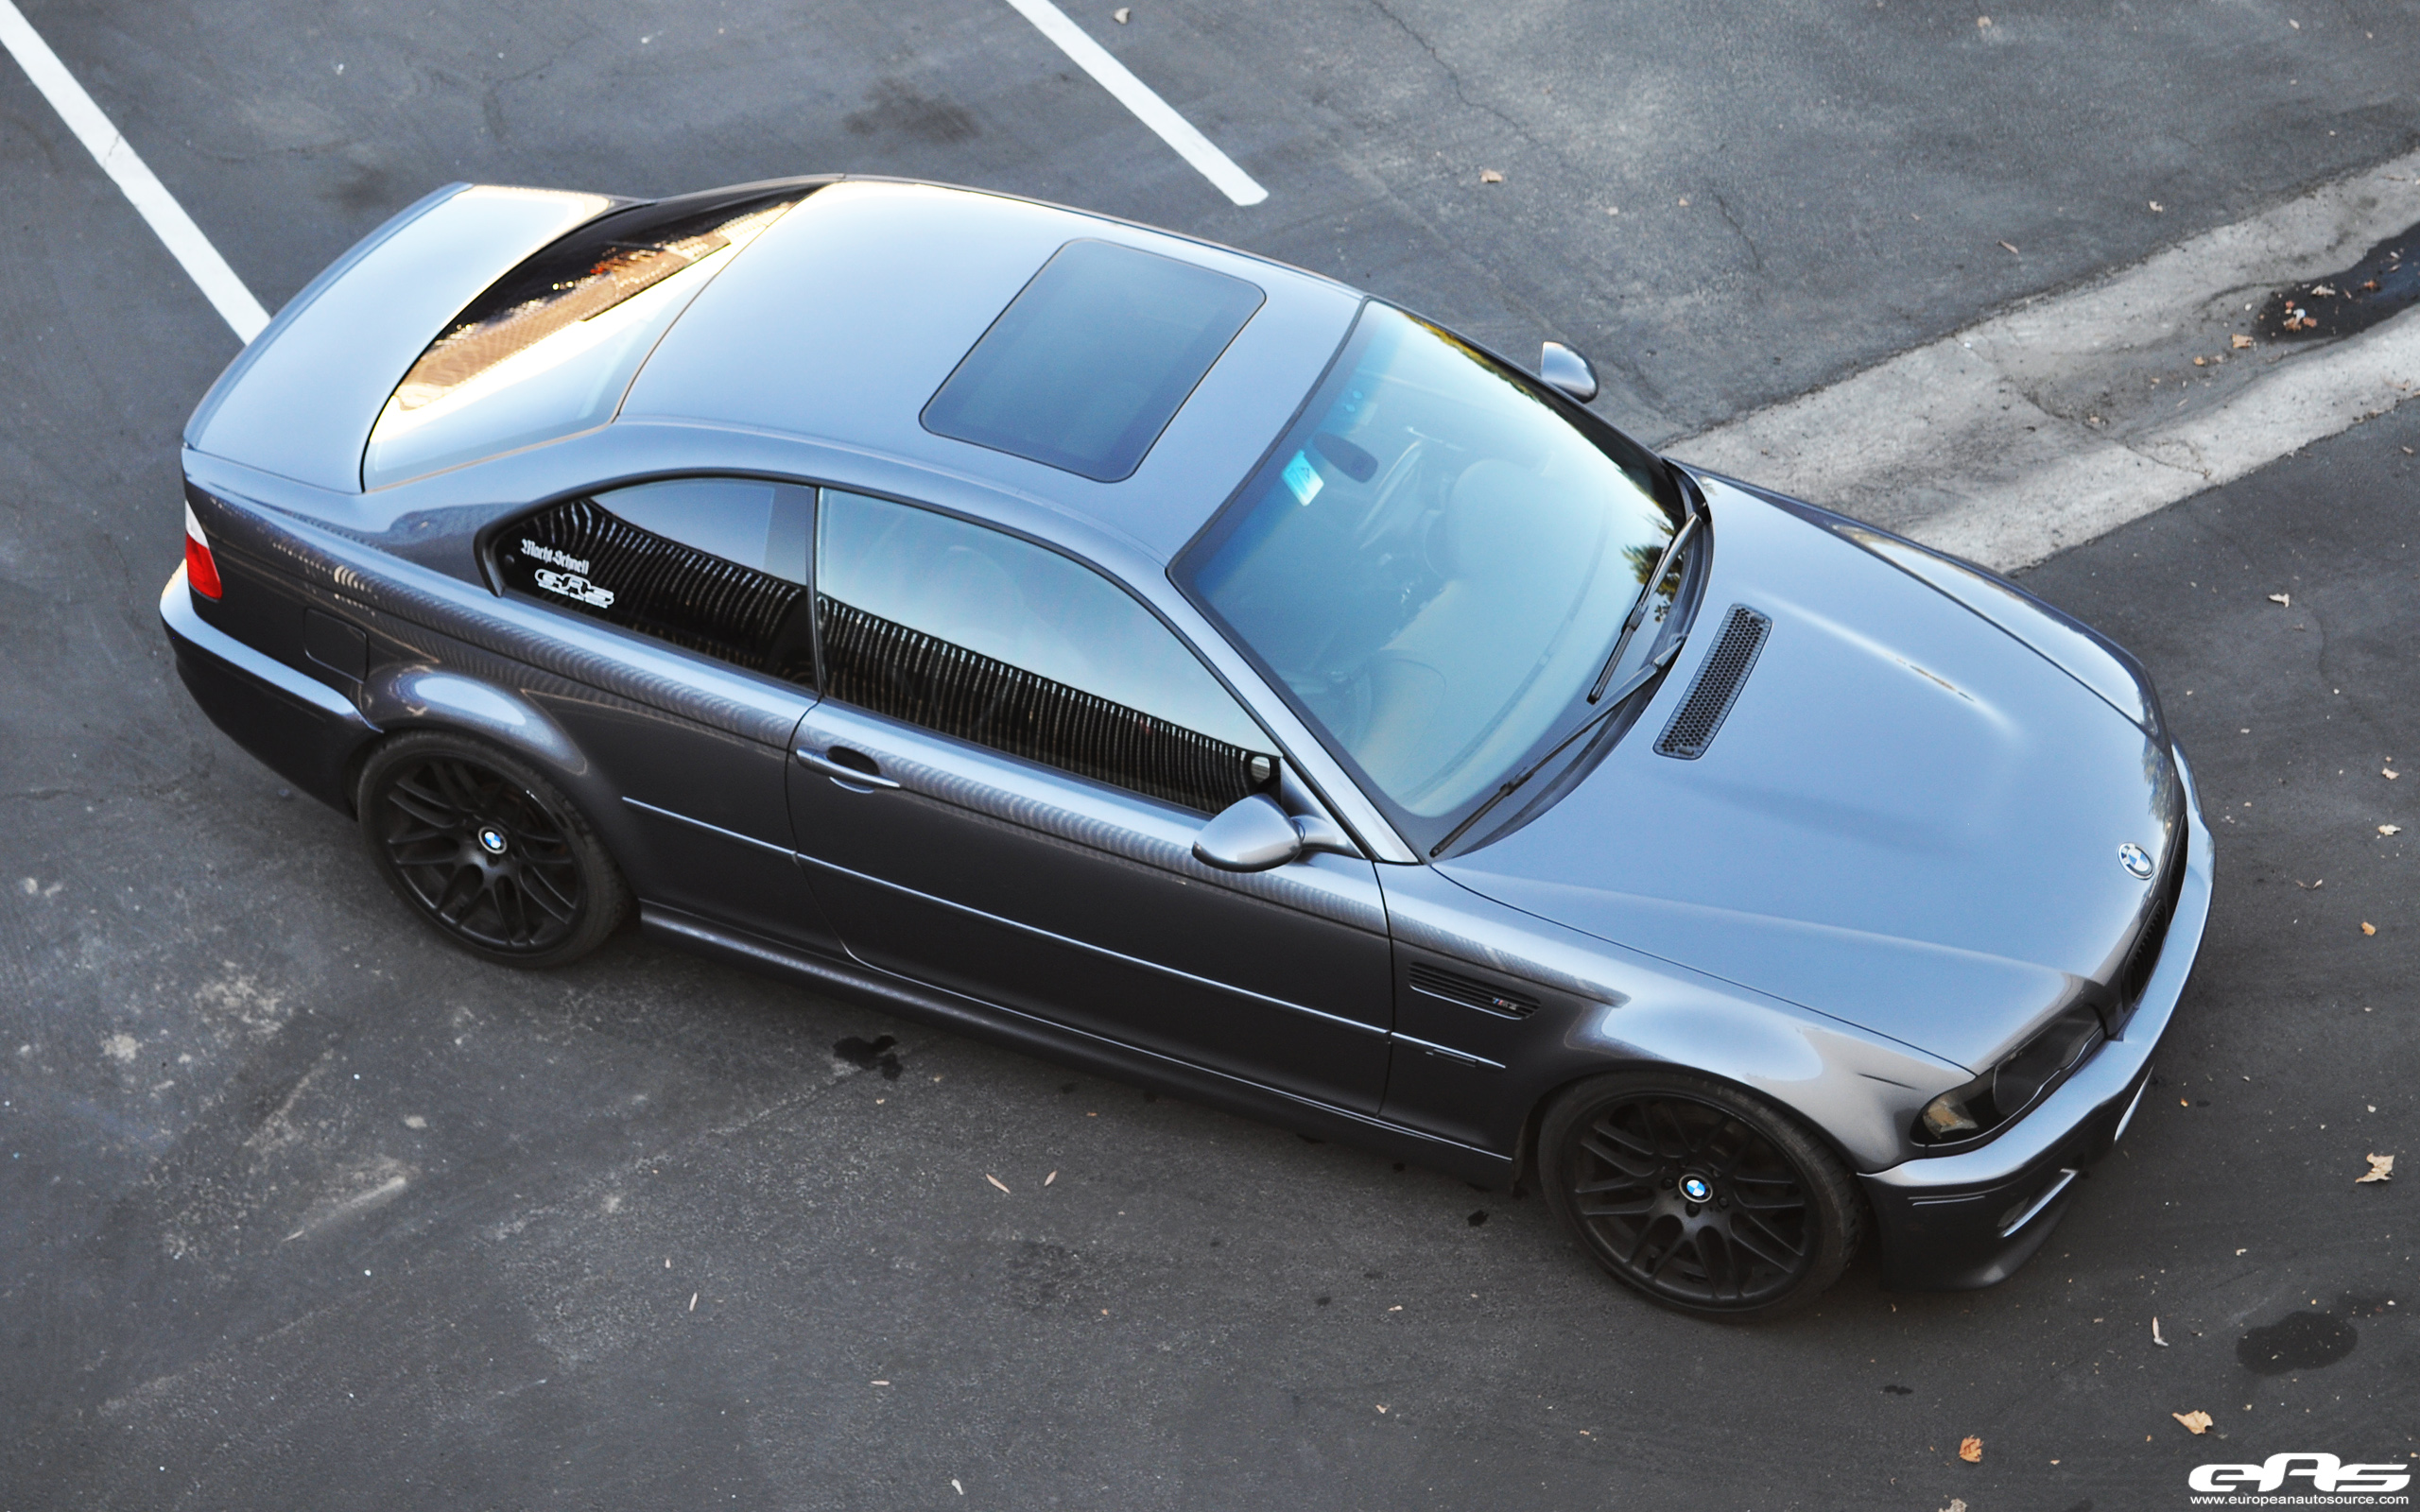 Steel gray e46 m3 on vmr vb3 wheels